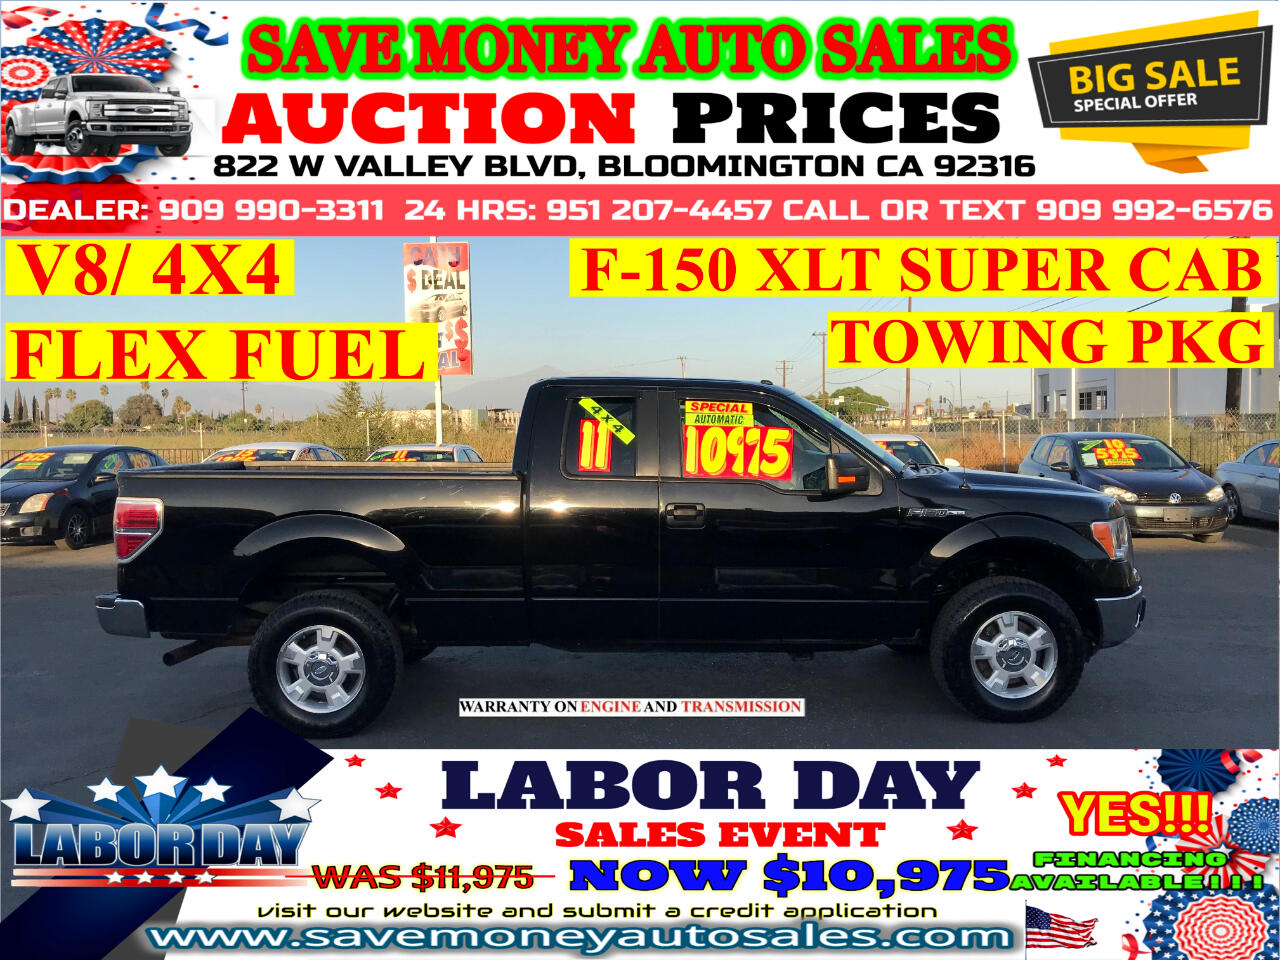 2011 Ford F-150 XLT SUPERCAB 4WD> EXTRA CLEAN> AUTOMATIC> FLEX FUE